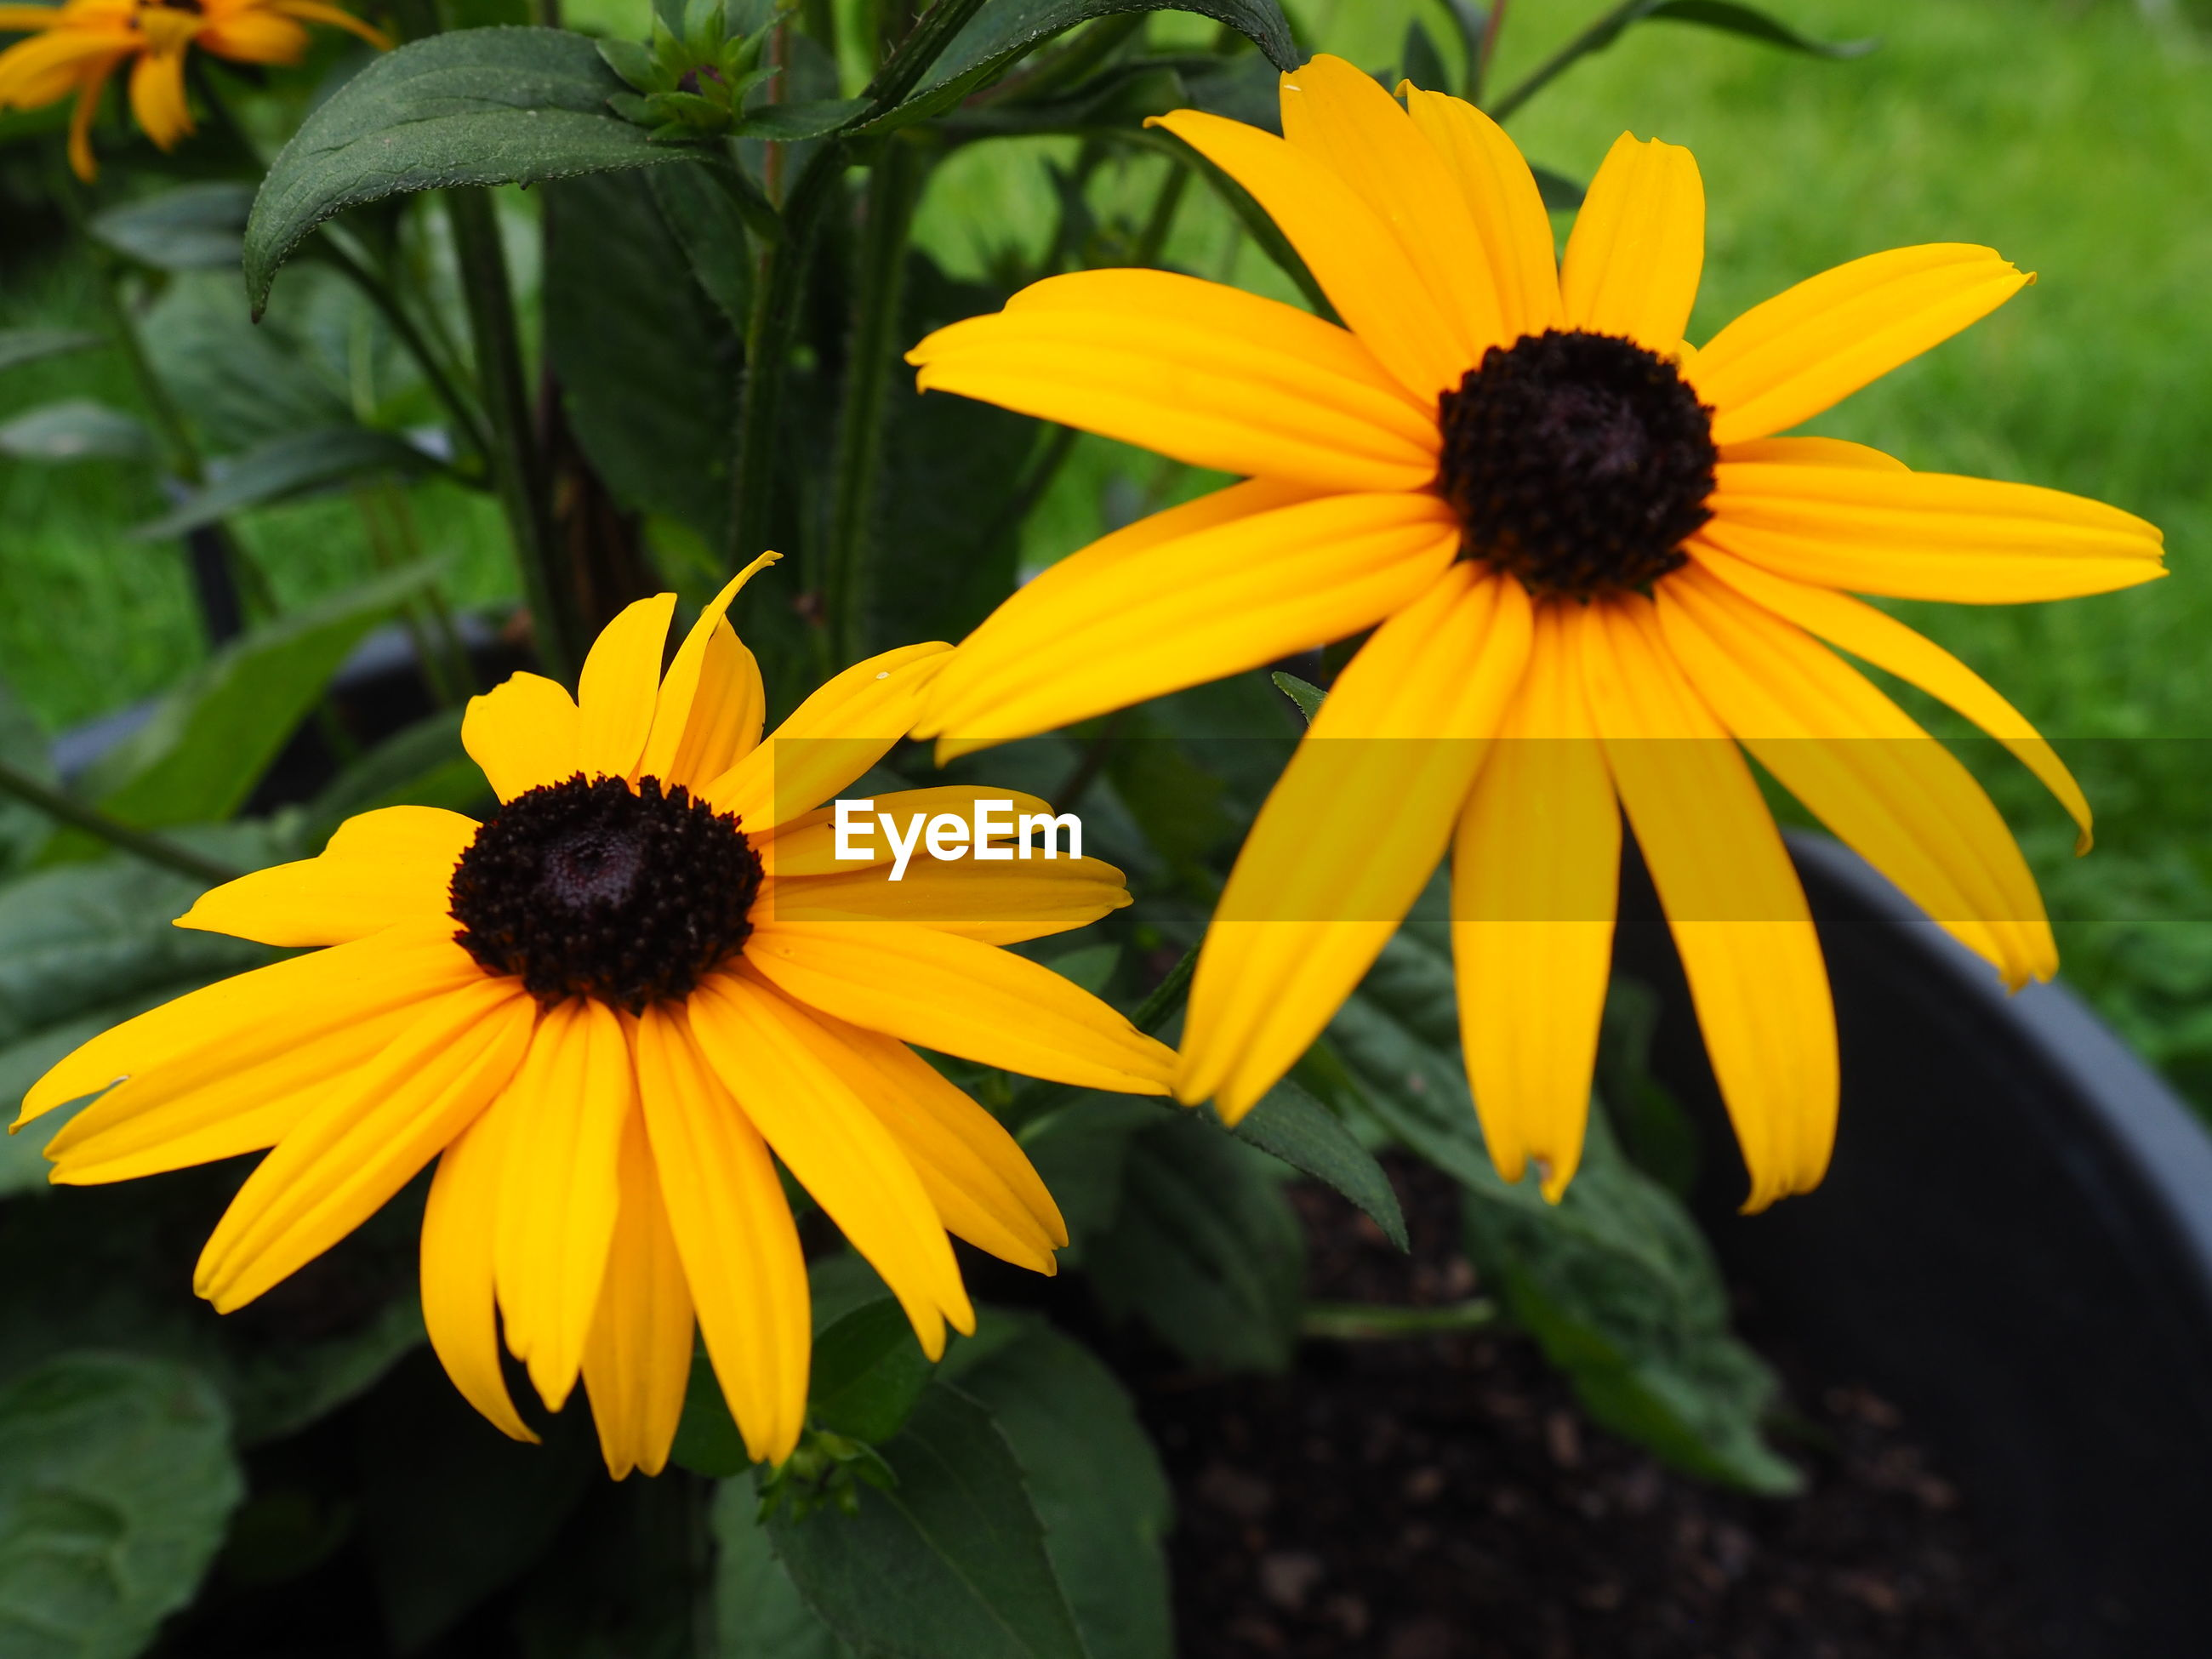 CLOSE-UP OF BLACK-EYED YELLOW FLOWER